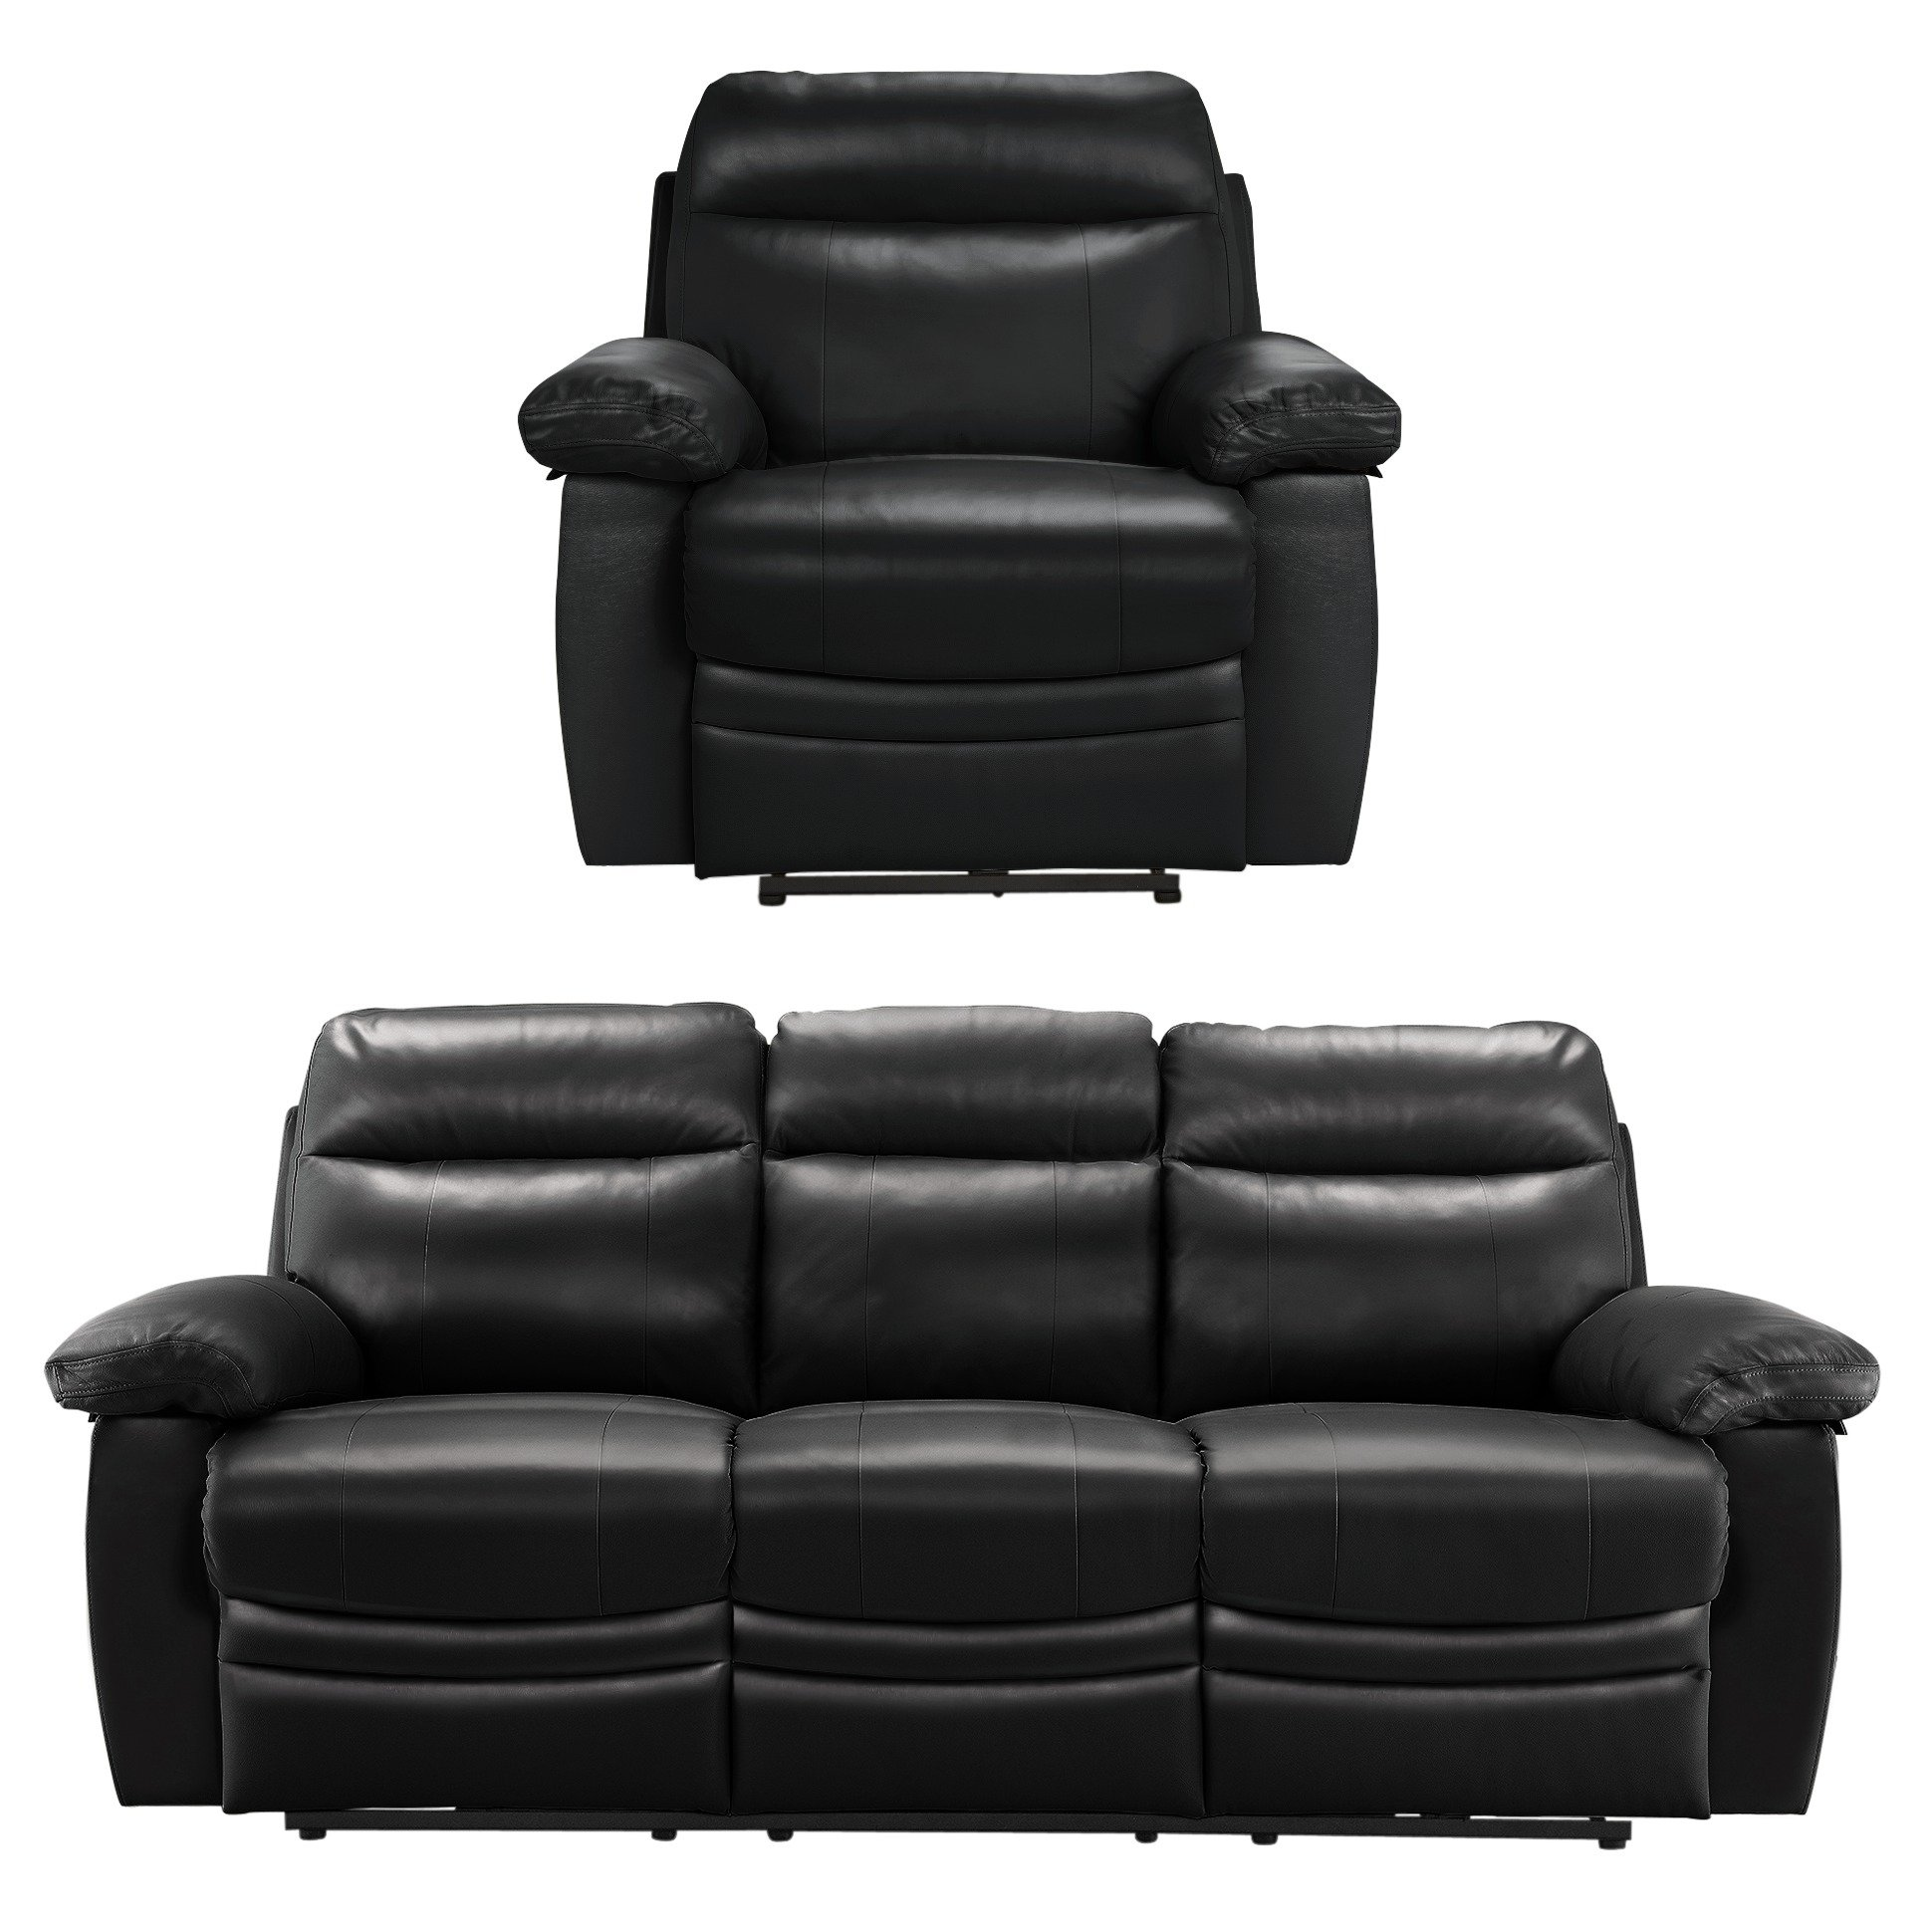 Argos Home - New Paolo Large Power Recliner - Sofa/Chair - Black